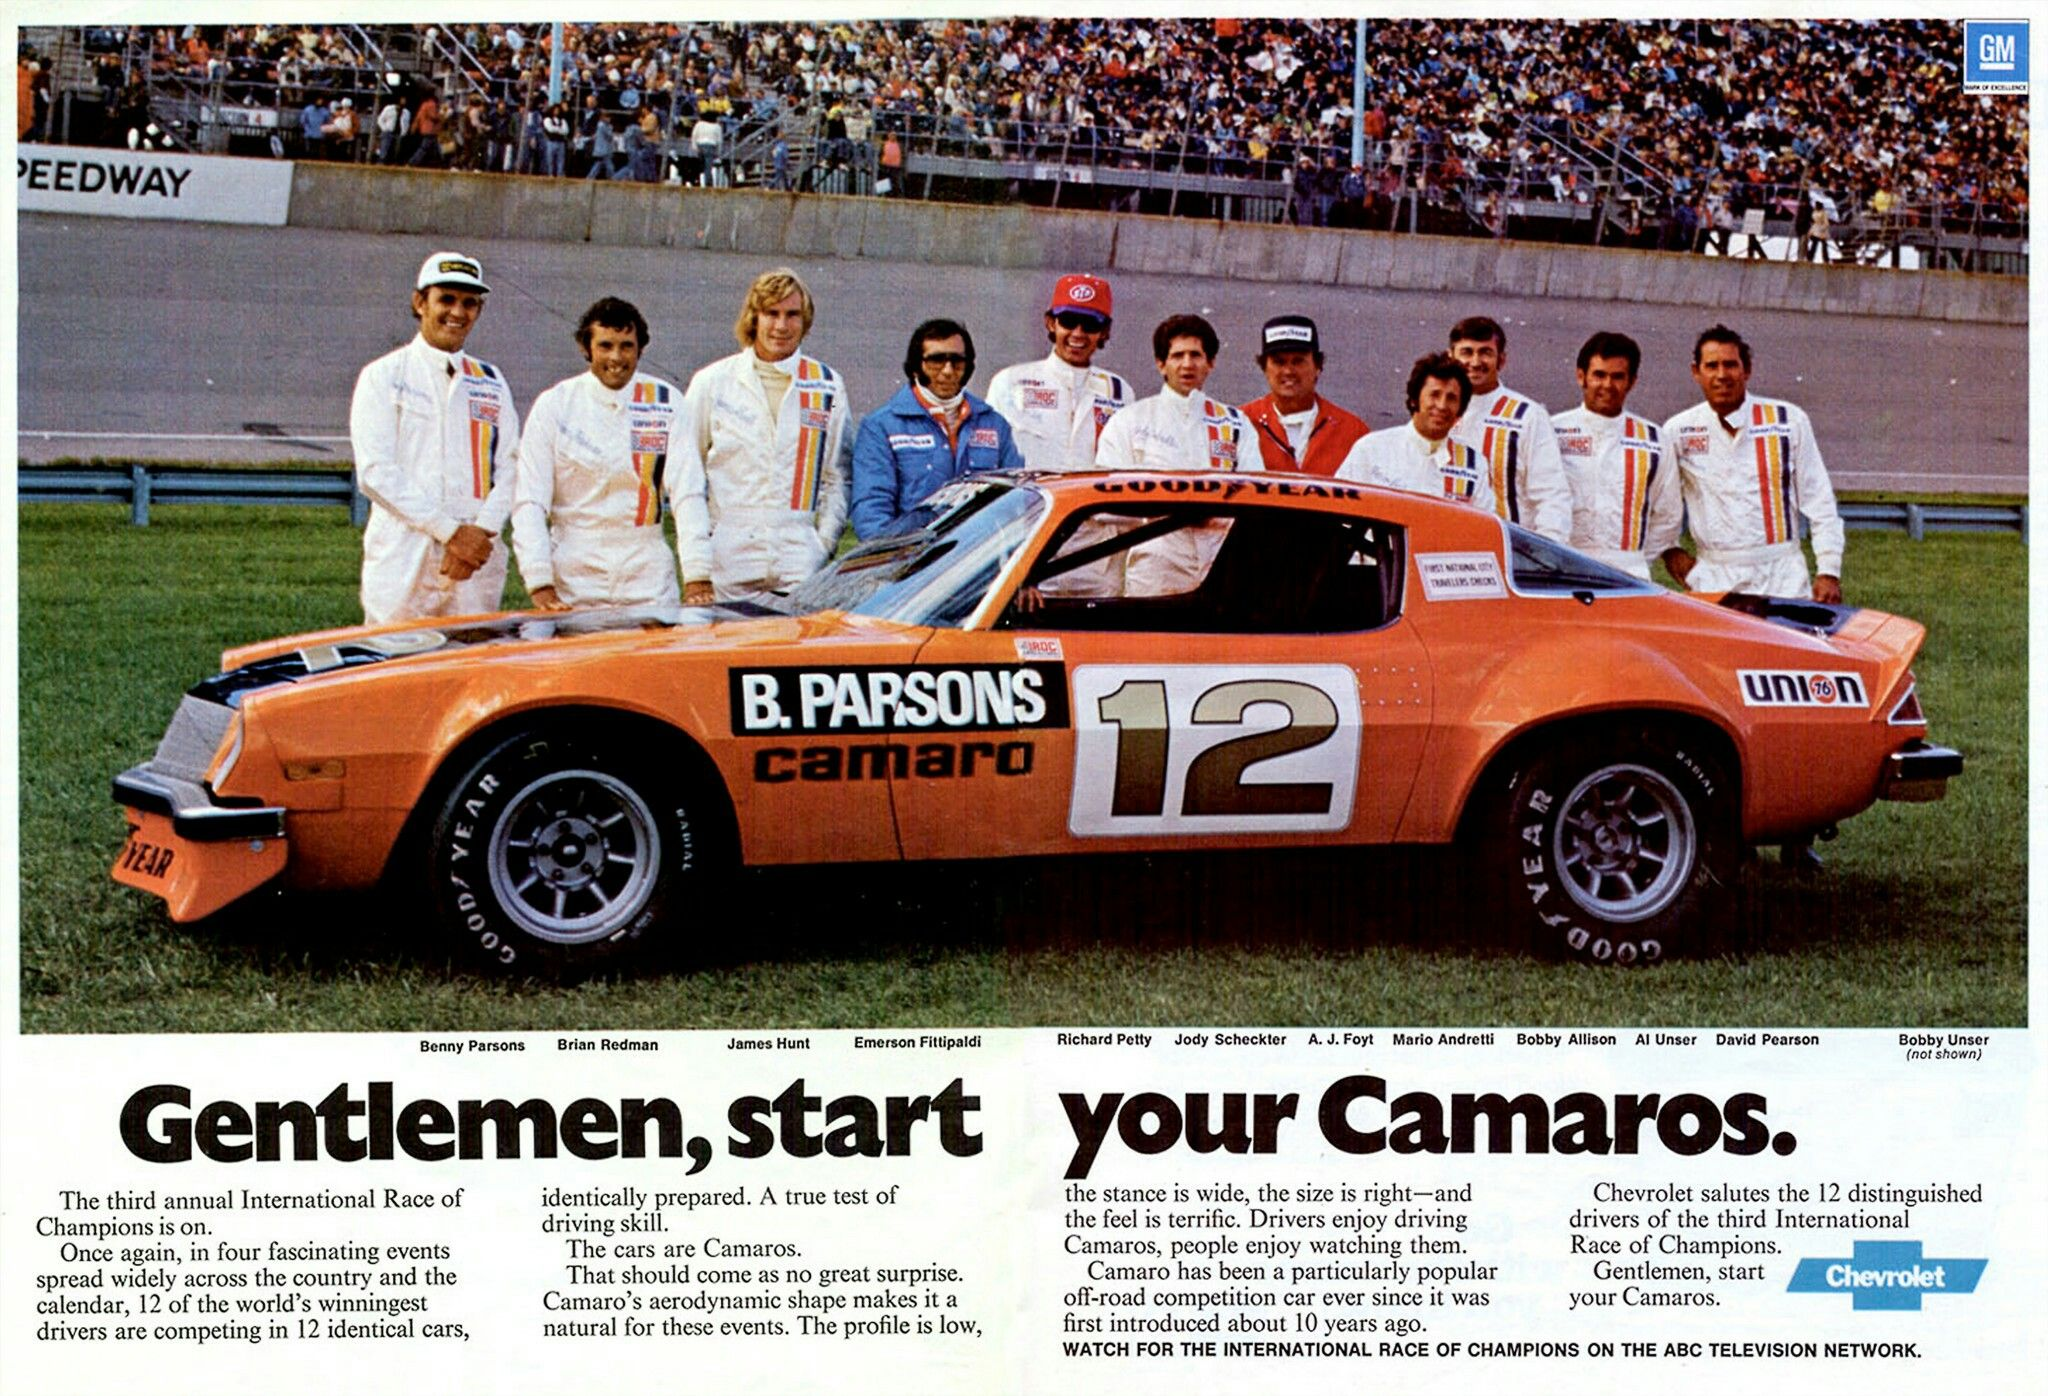 Chevy touted the IROC series in 1970s advertising, but it did not strike a licensing deal to use the name on a production Camaro until 1984 (for 1985 model year).